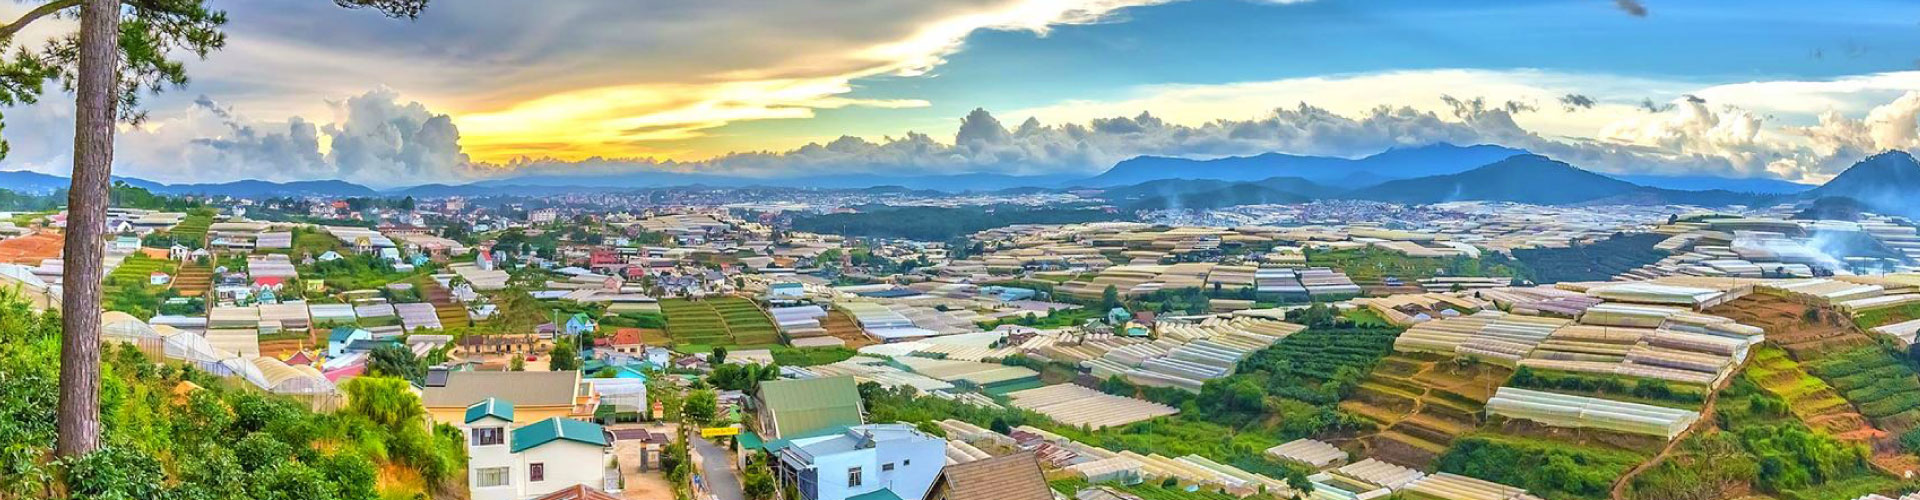 Tour - 4d3n Twin Cities Of Da Lat + Nha Trang (From Nha Trang) - Vnepndlpk049a - R7